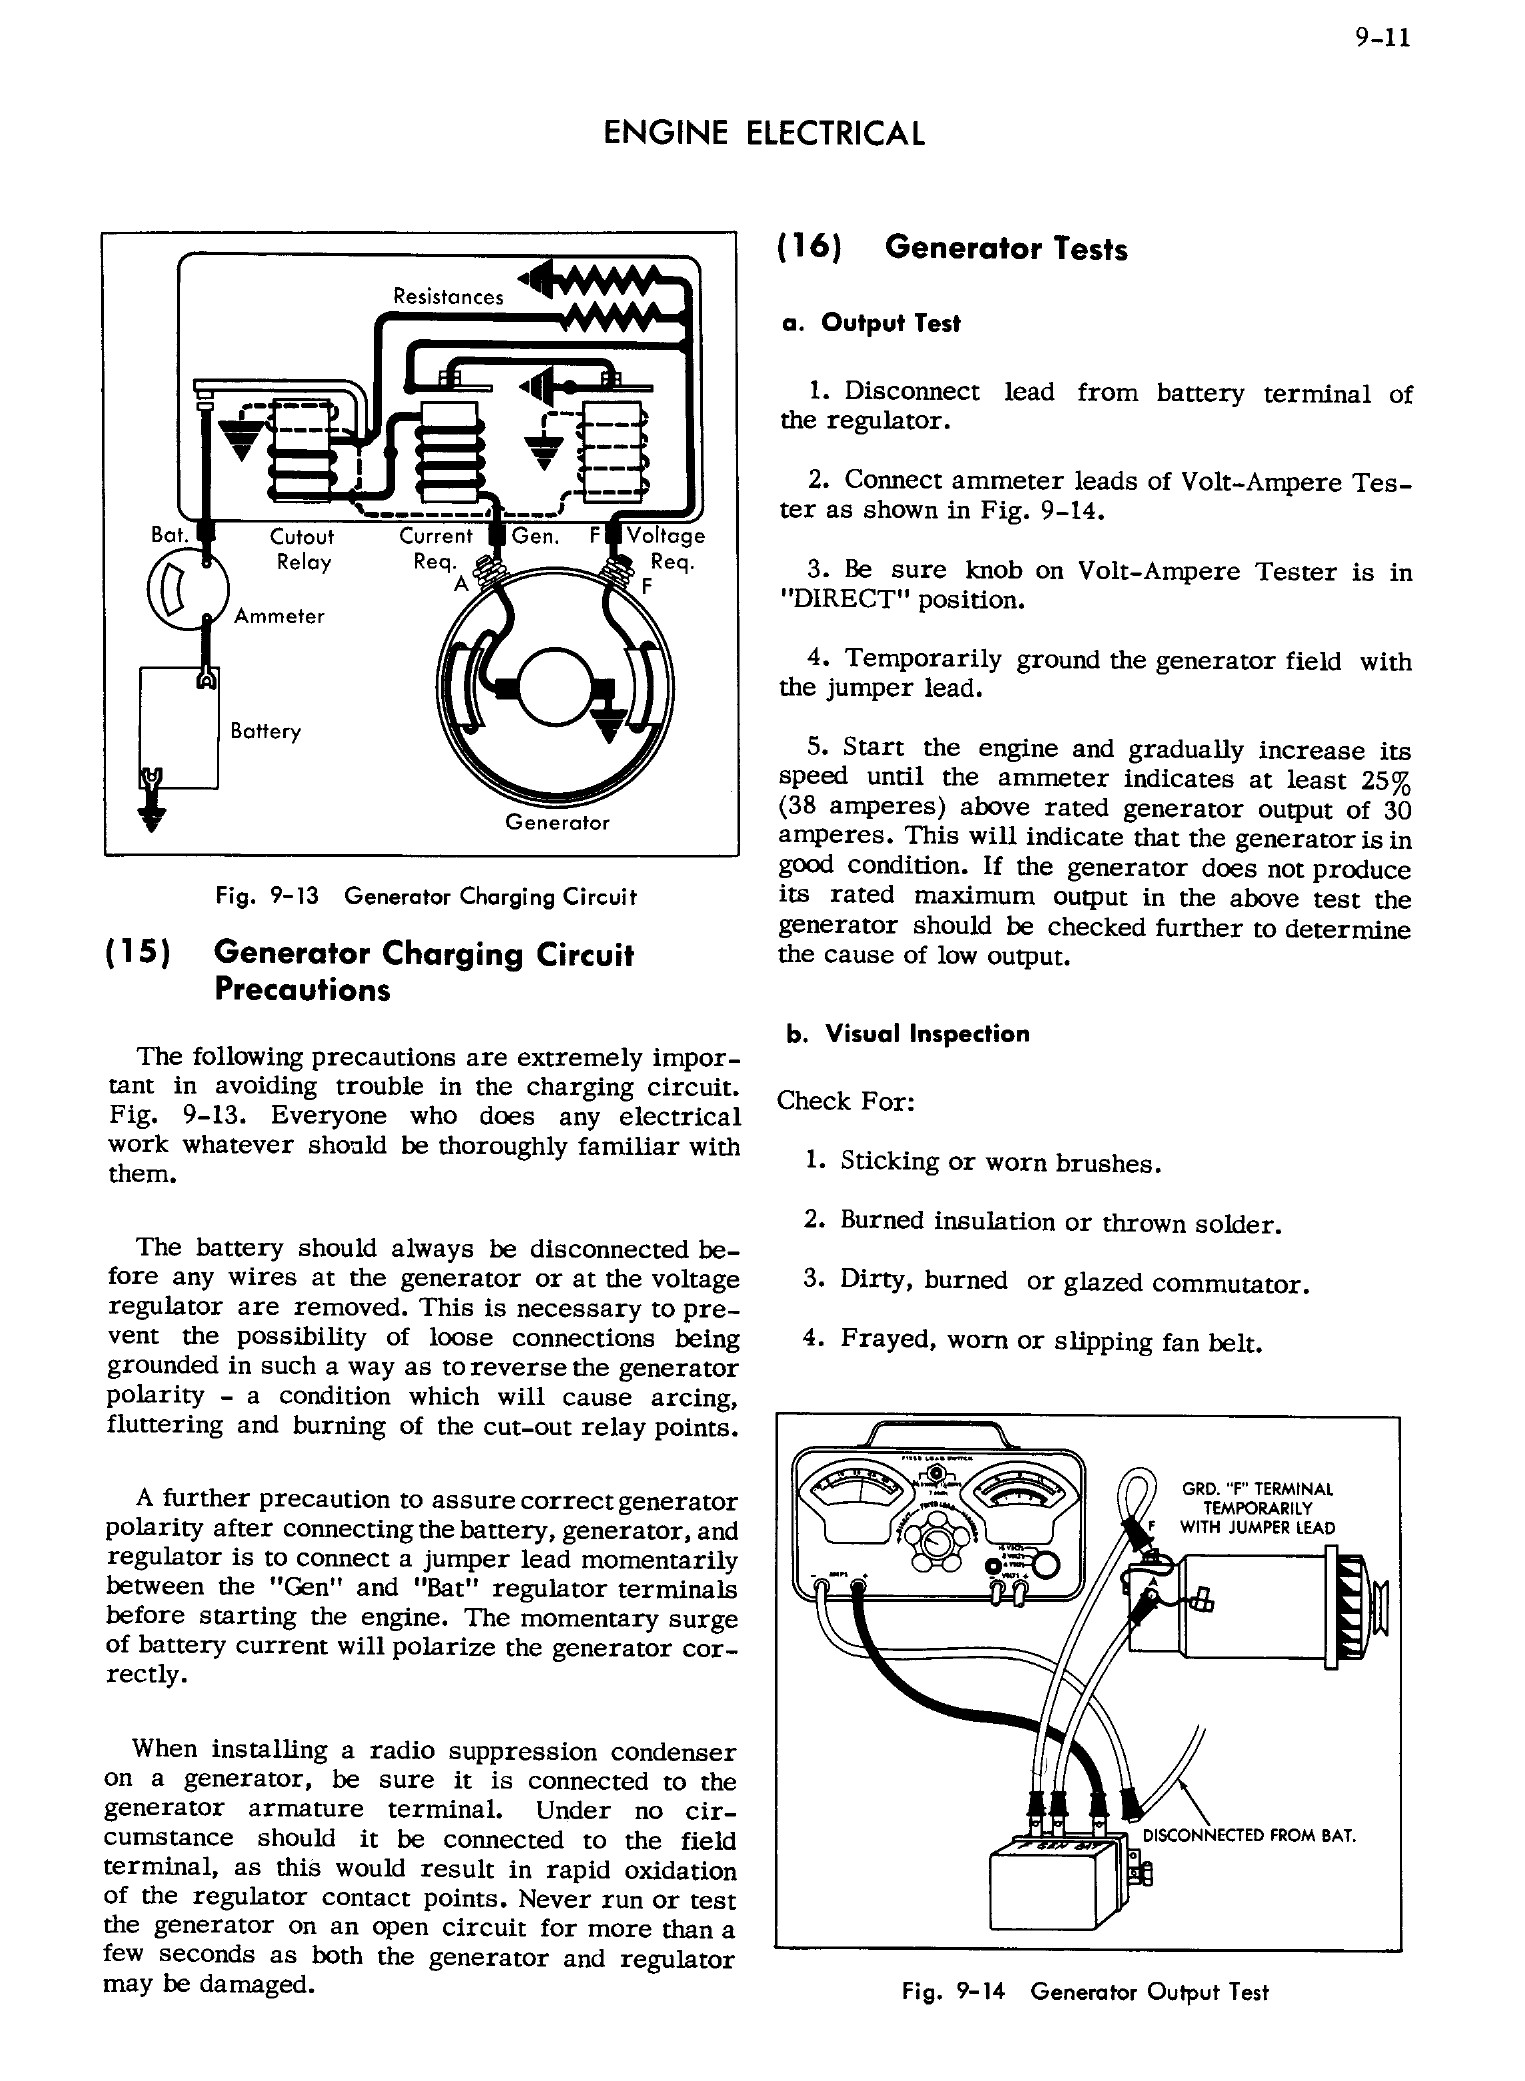 1956 Cadillac Shop Manual- Engine Electrical Page 11 of 28